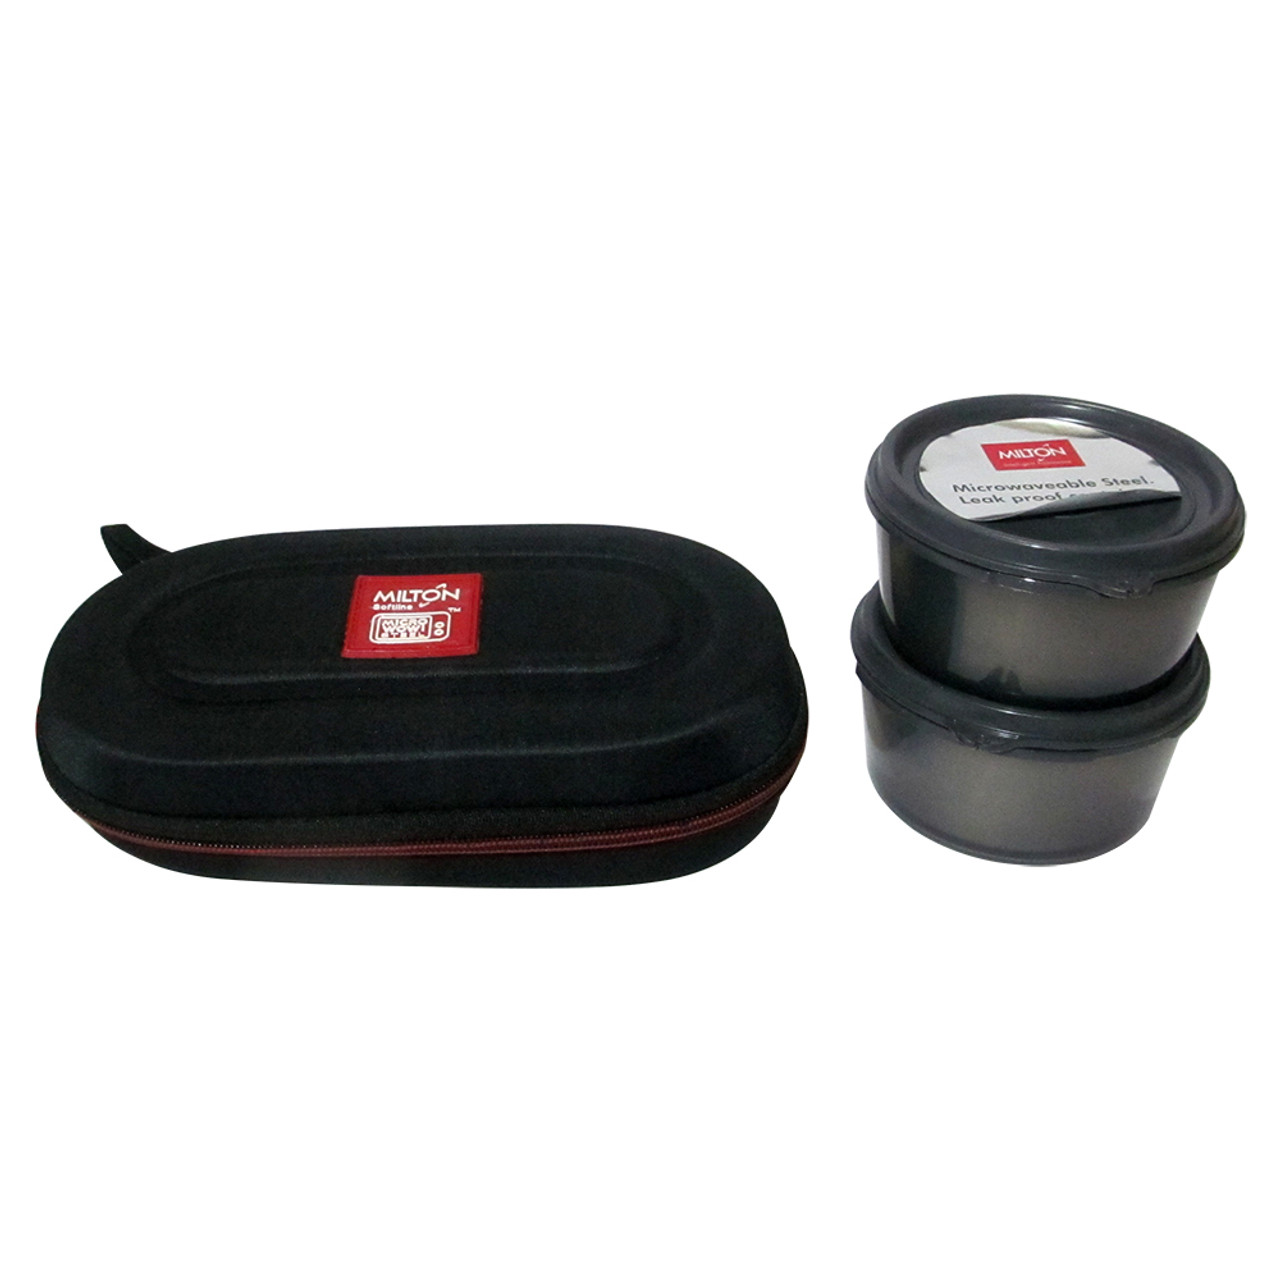 Milton Soft Line Nutri Lunch, 2 Round Leak Proof Container Insulated Lunch Box - Image 3